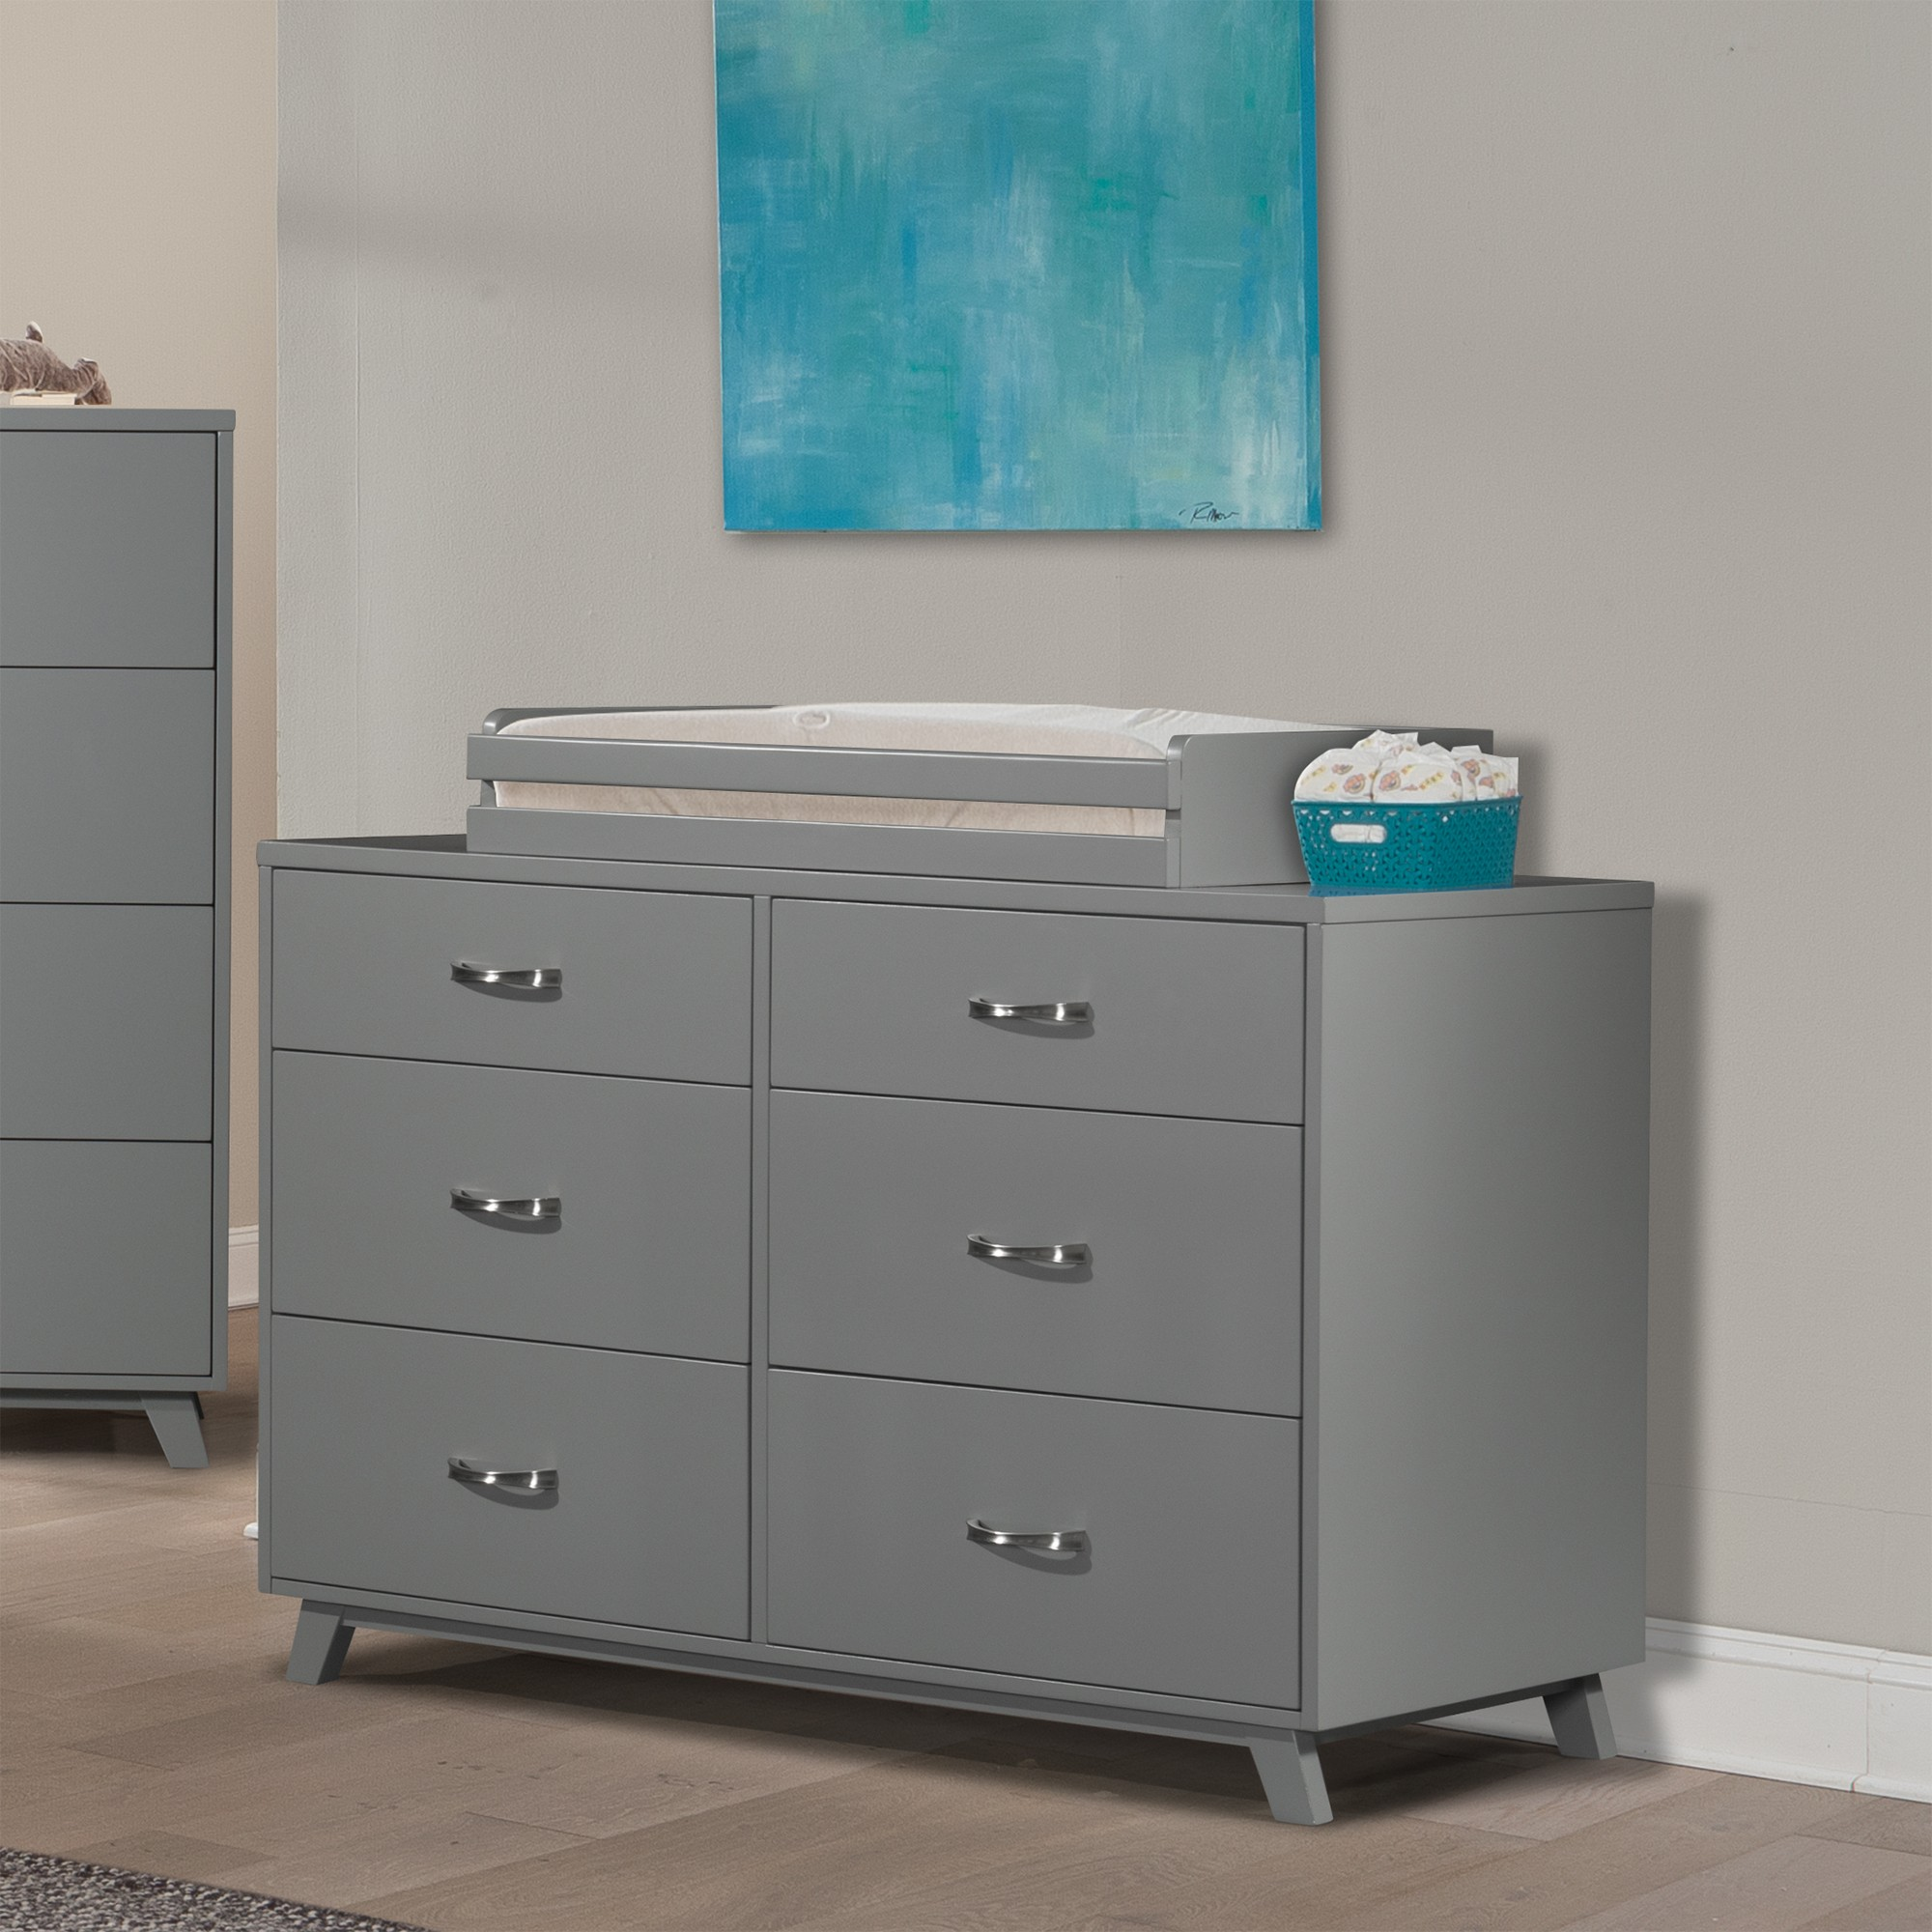 Soho Double Dresser Child Craft